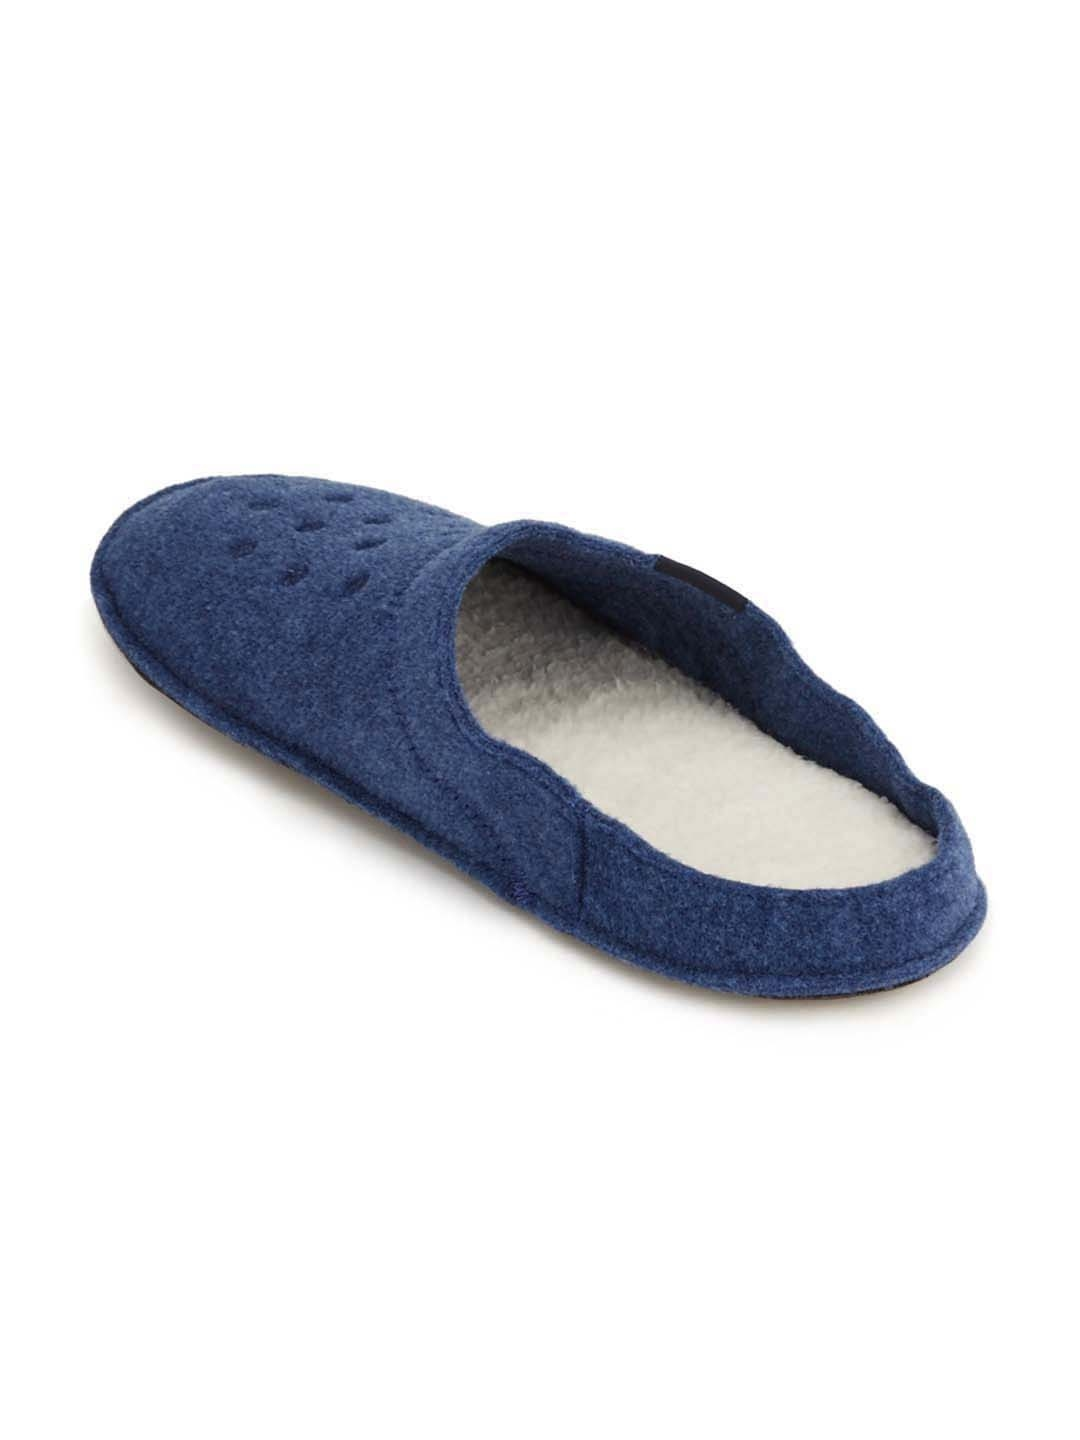 7aa7a8ea7adea8 Buy Crocs Unisex Blue Classic Slippers - Flip Flops for Unisex ...